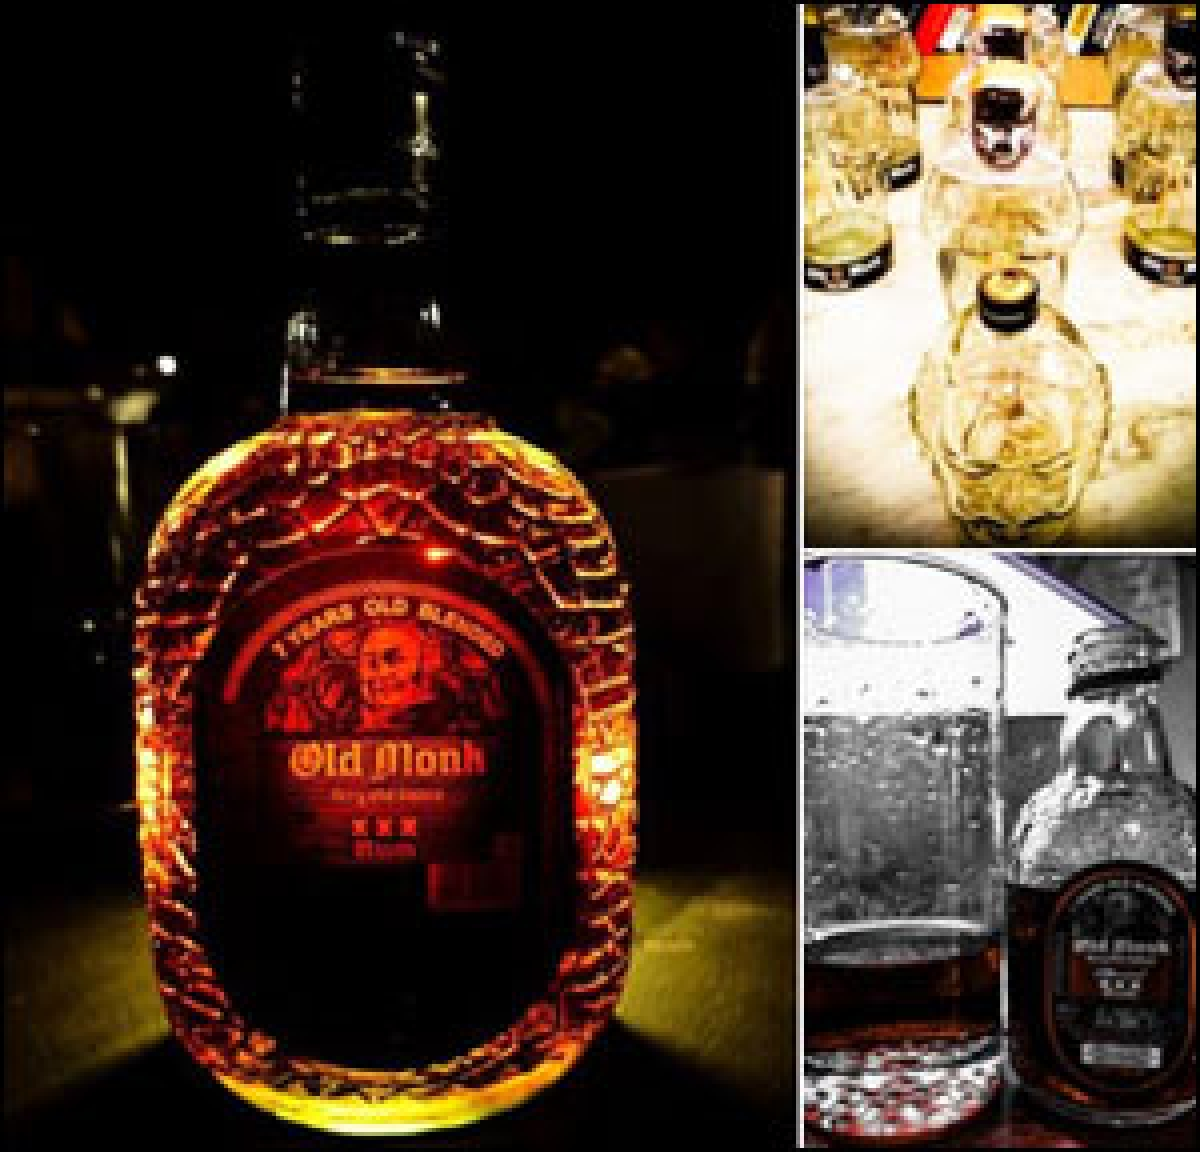 Old Monk - A Rite of Passage